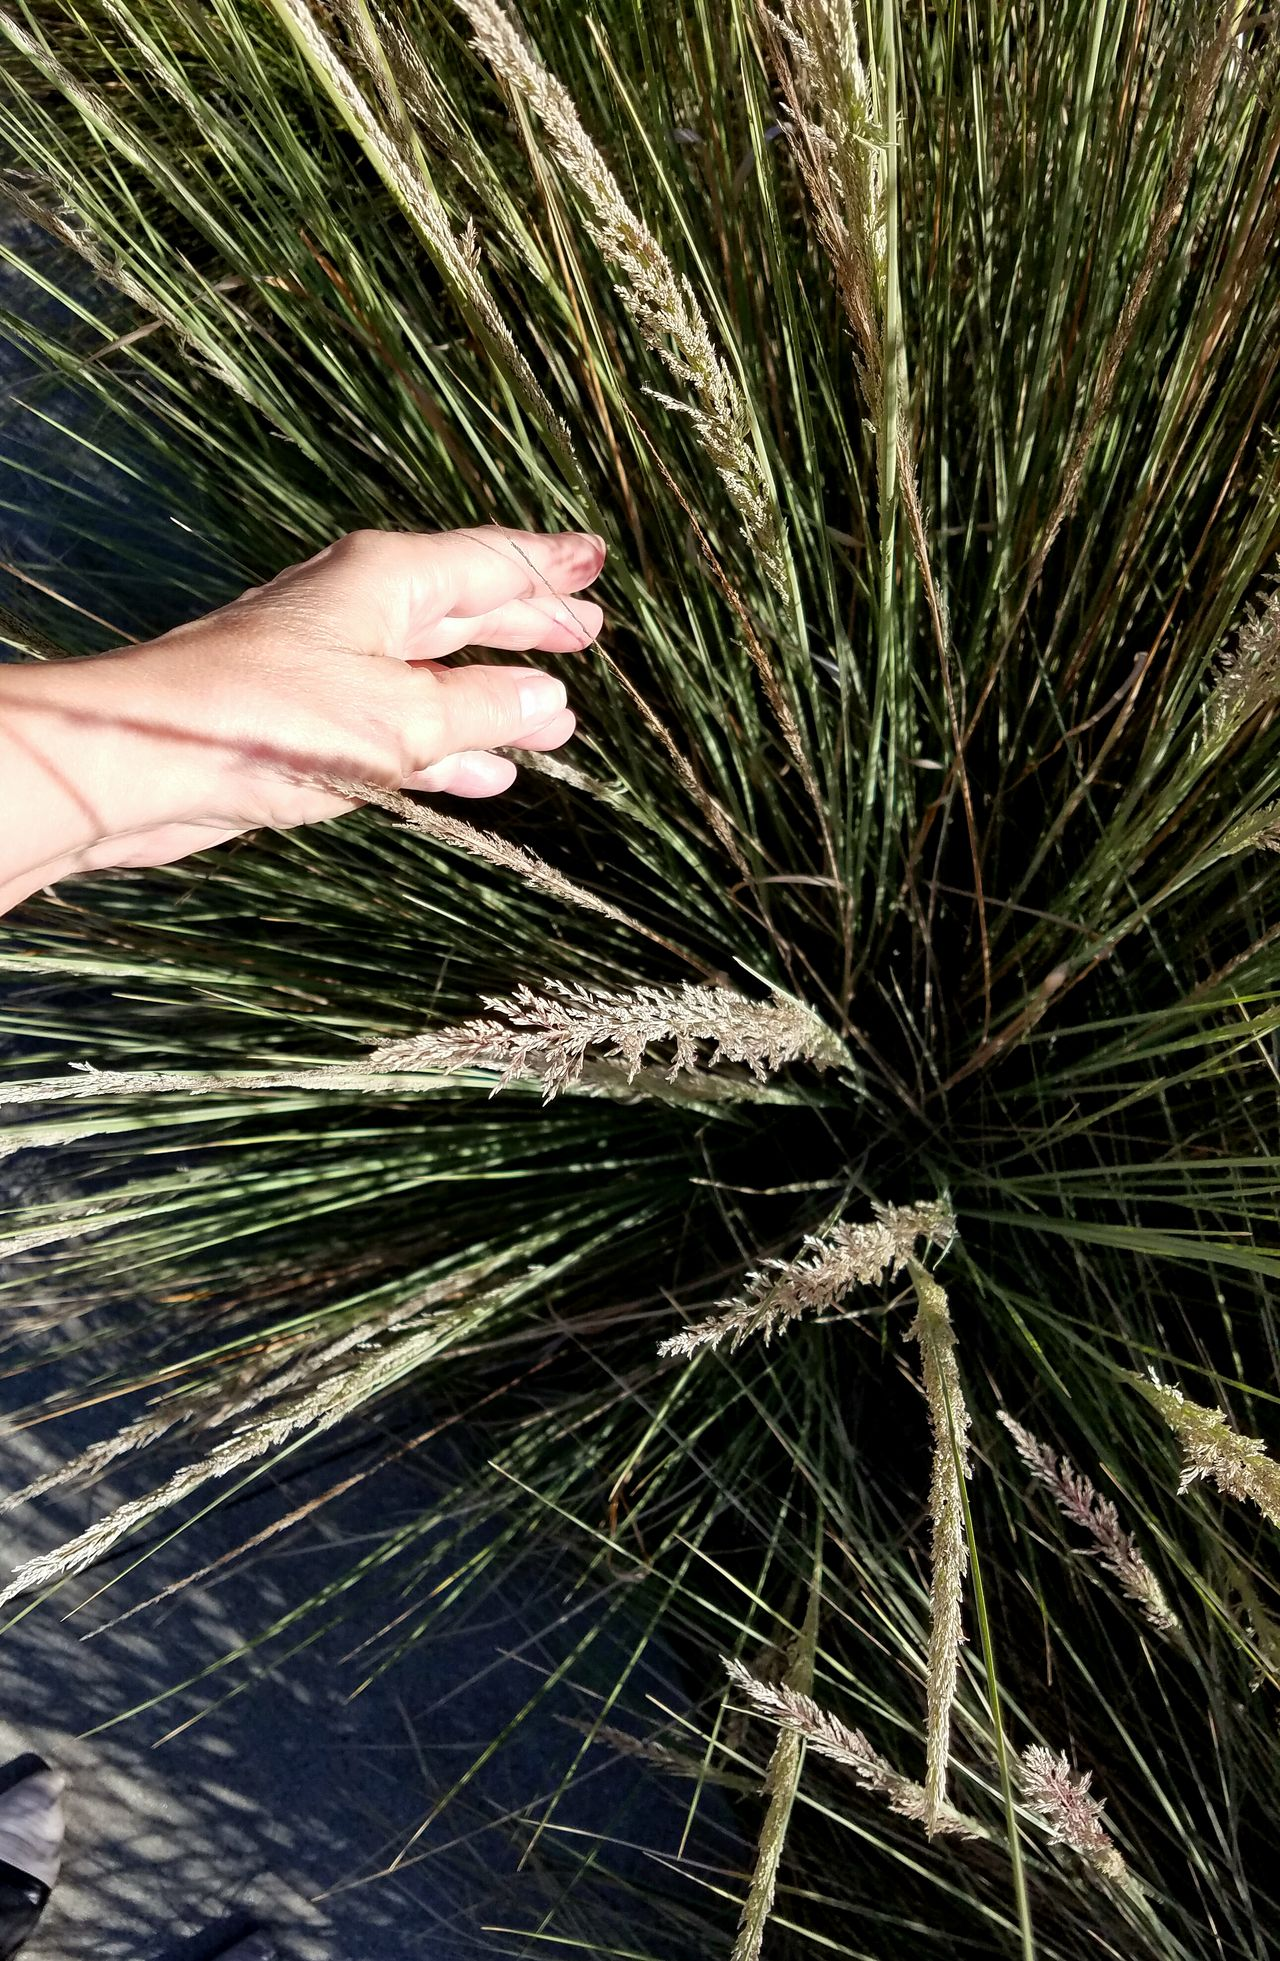 Reaching Growth Part Of Person Cropped Green Color Plant Nature Outdoors Branch Palm Leaf Beauty In Nature Scenics Hand Natural Condition Check This Out Fine Art Photography Tall Grasses Fragility Tranquility Dramatic Angles